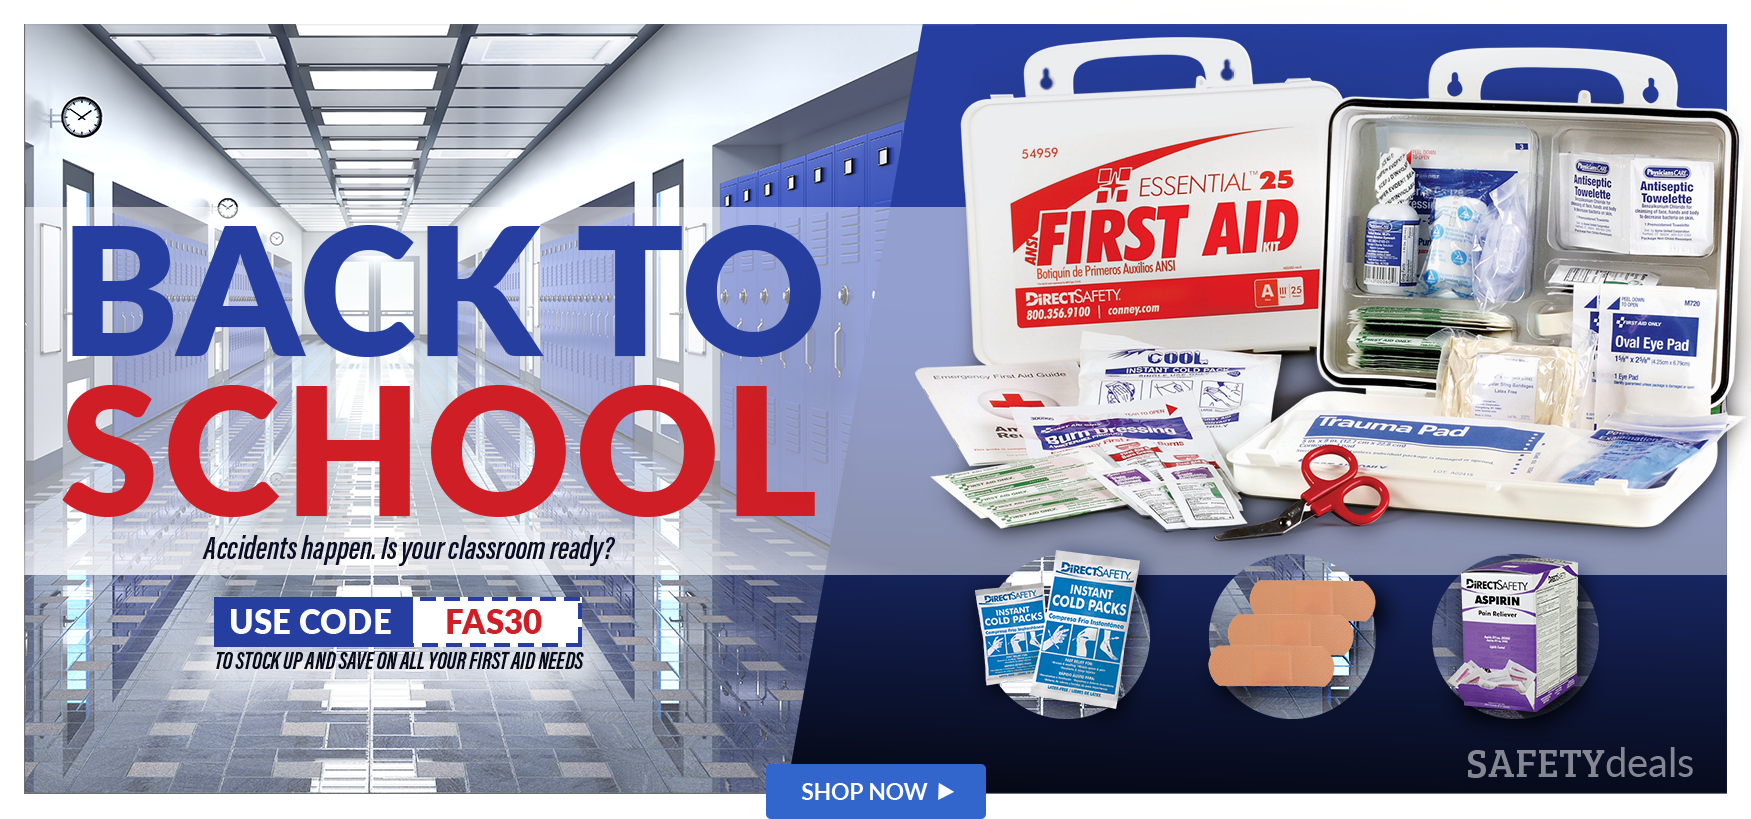 Get ready for school, Stock up and Save on First Aid